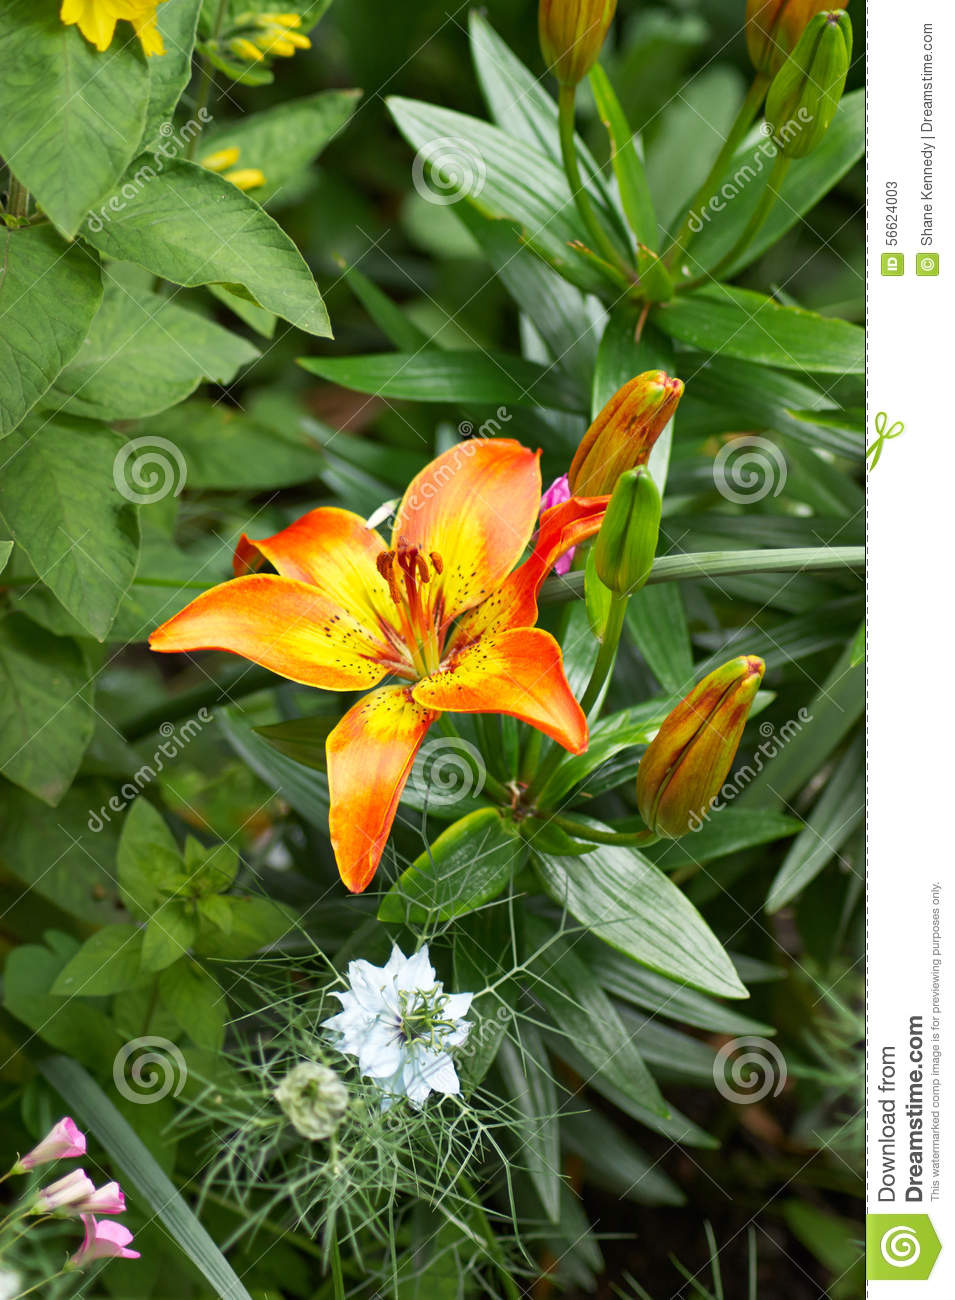 Garden border with orange lily stock image image of garden leaves several different plants and flowers in a garden border including orange lily and blue nigella flowers izmirmasajfo